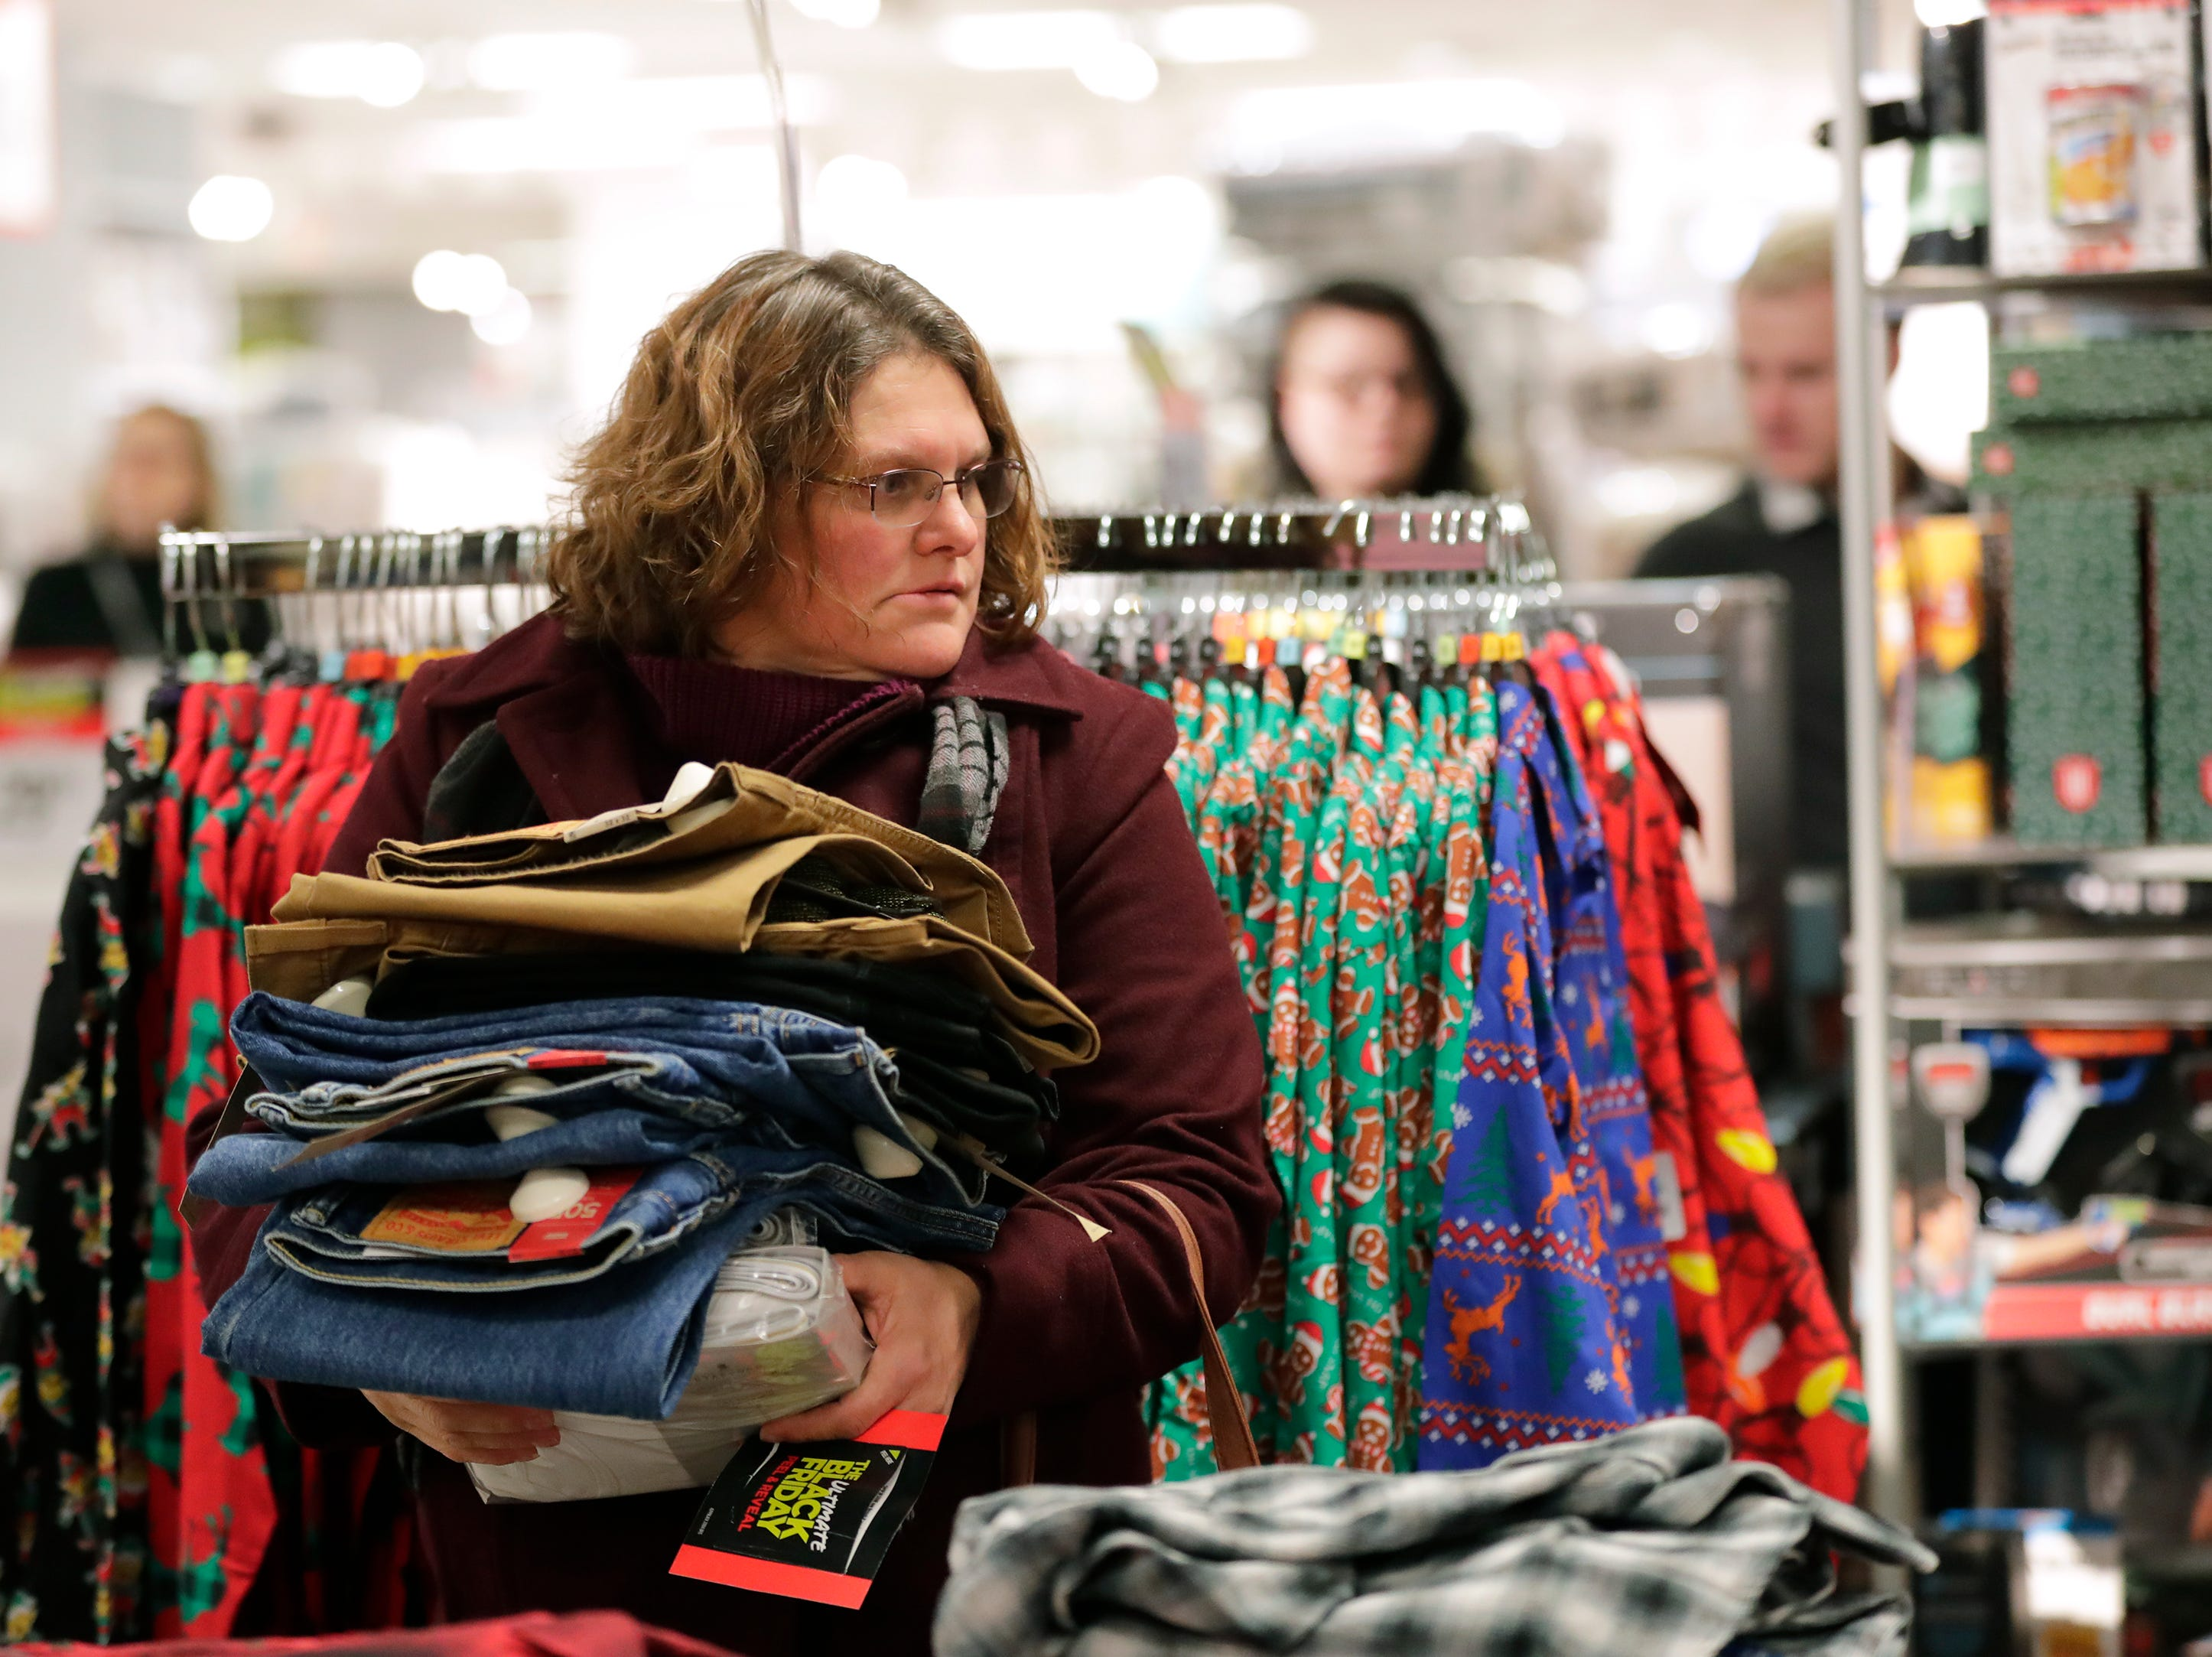 Jean Kempf of Appleton is loaded down with goods as she shops for Black Friday deals at JCPenney Thursday, November 22, 2018, in Grand Chute, Wis. 